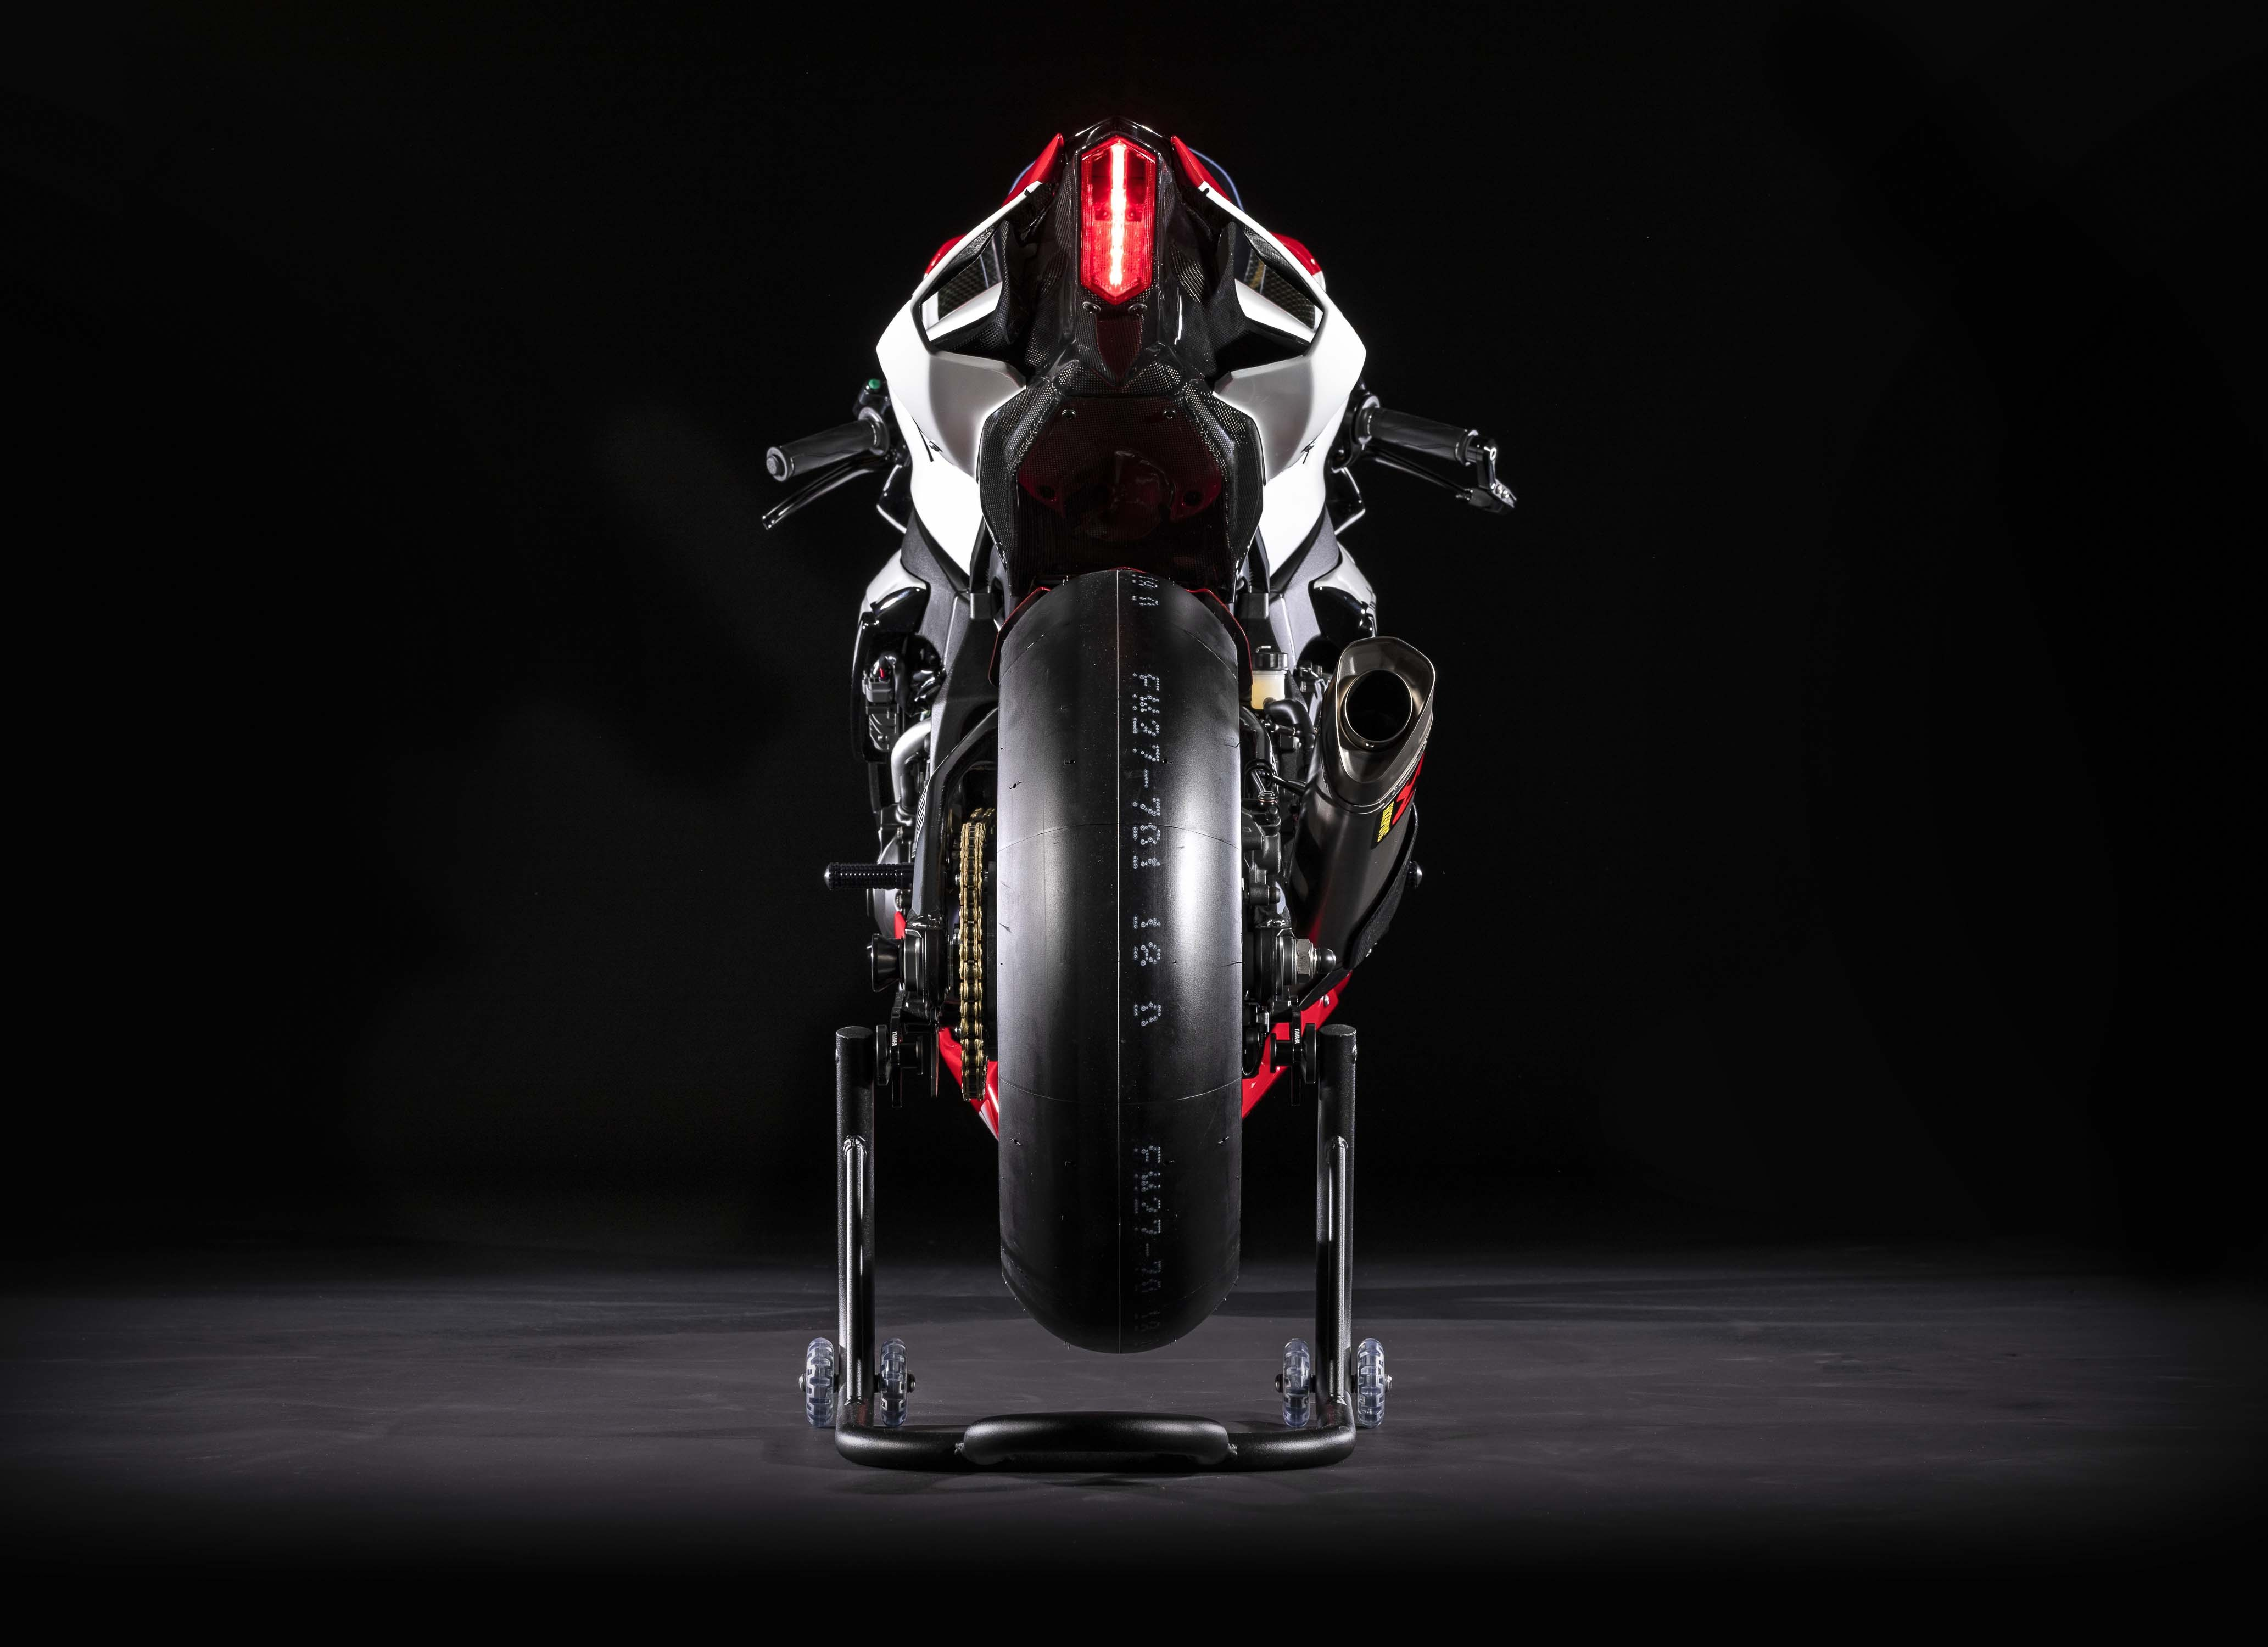 2019 Yamaha YZF R1 GYTR 20th Anniversary Unveiled All 20 Reserved 4130x3000